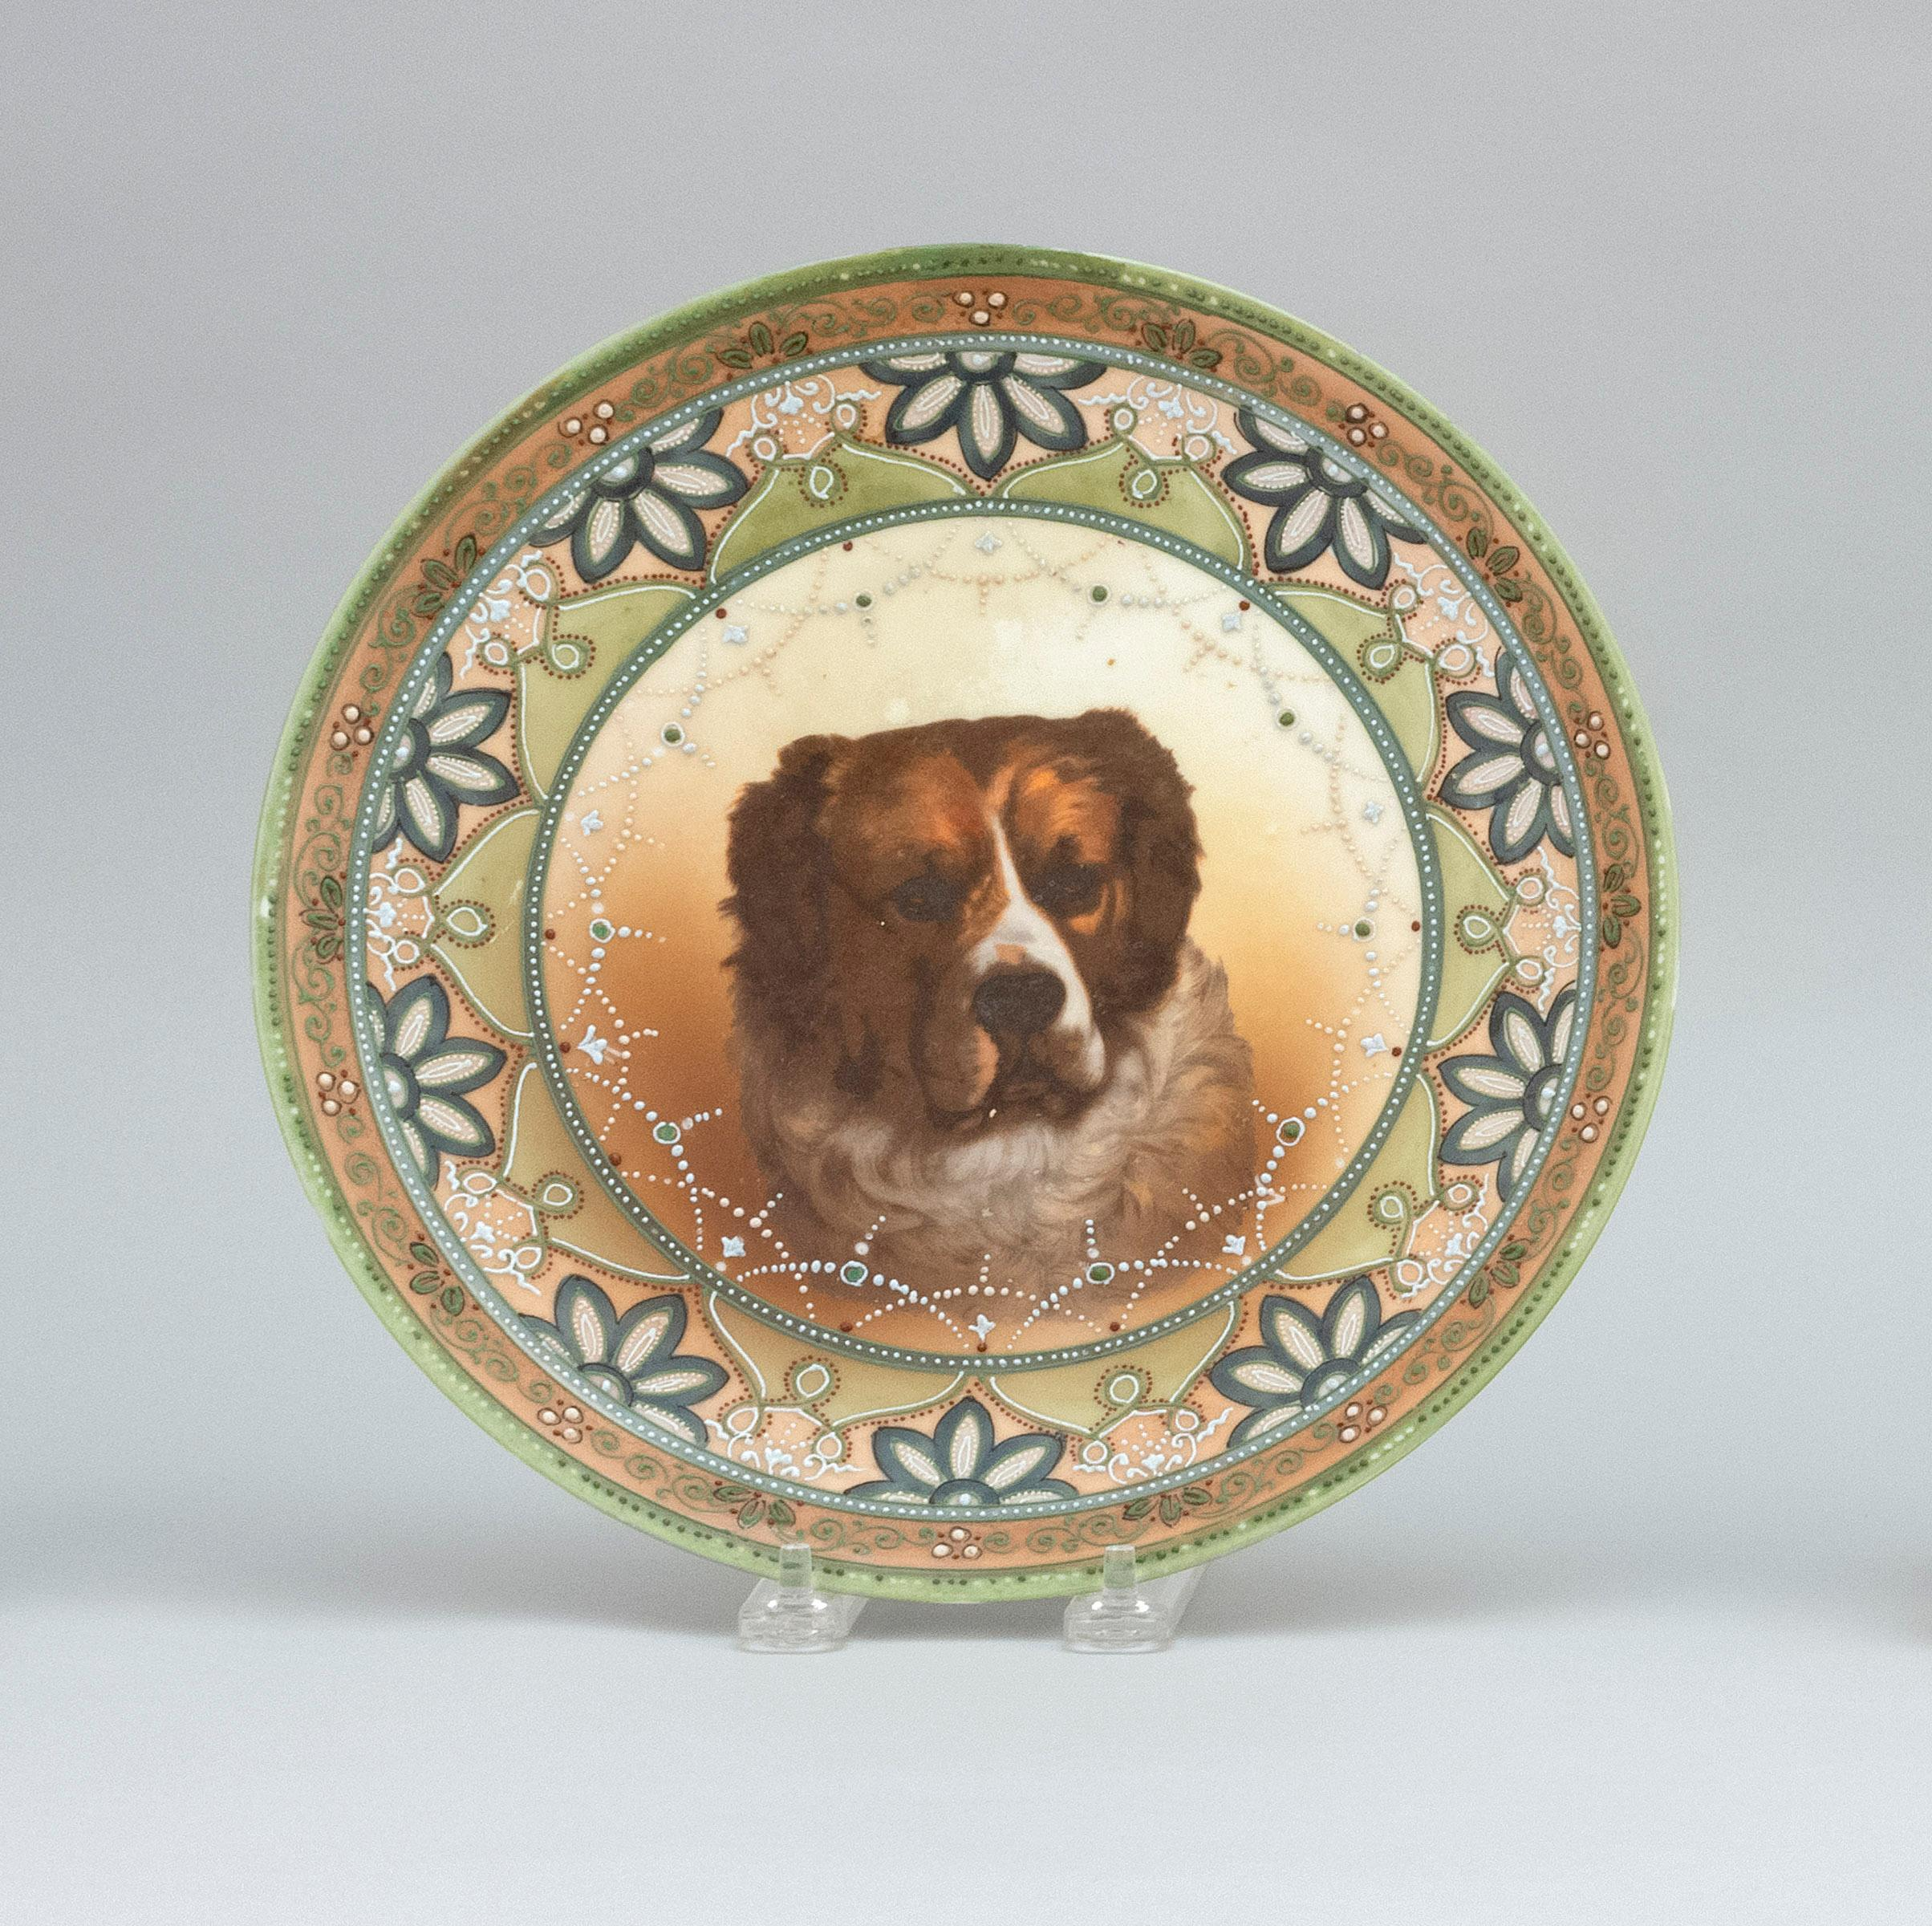 "NIPPON PORCELAIN PLATE With dog portrait surrounded by moriage flowers. Van Patten #52 mark on base. Diameter 10""."